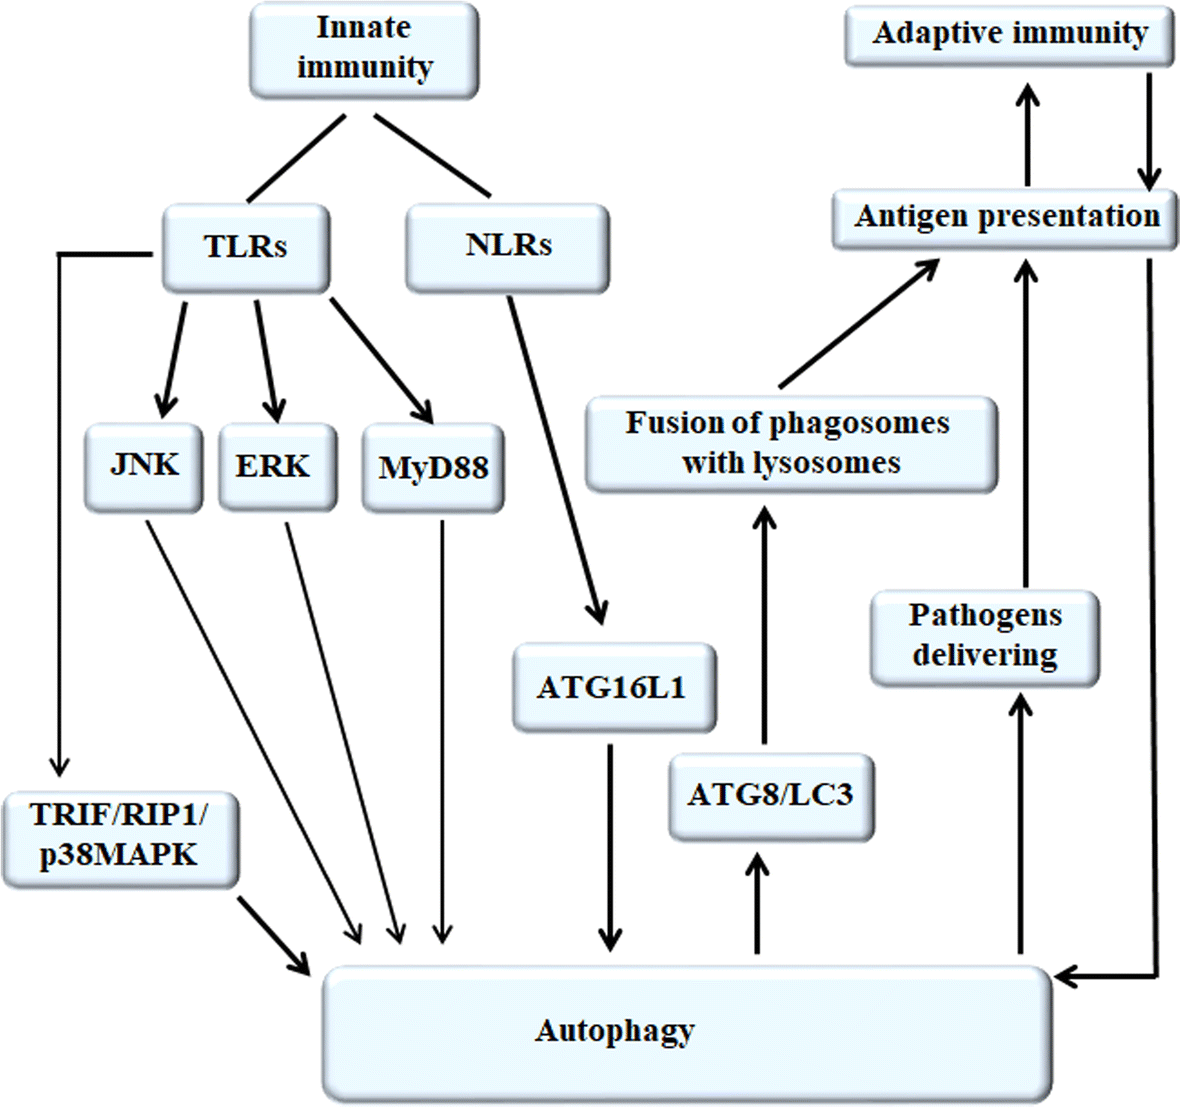 The relationship between autophagy and the immune system and its